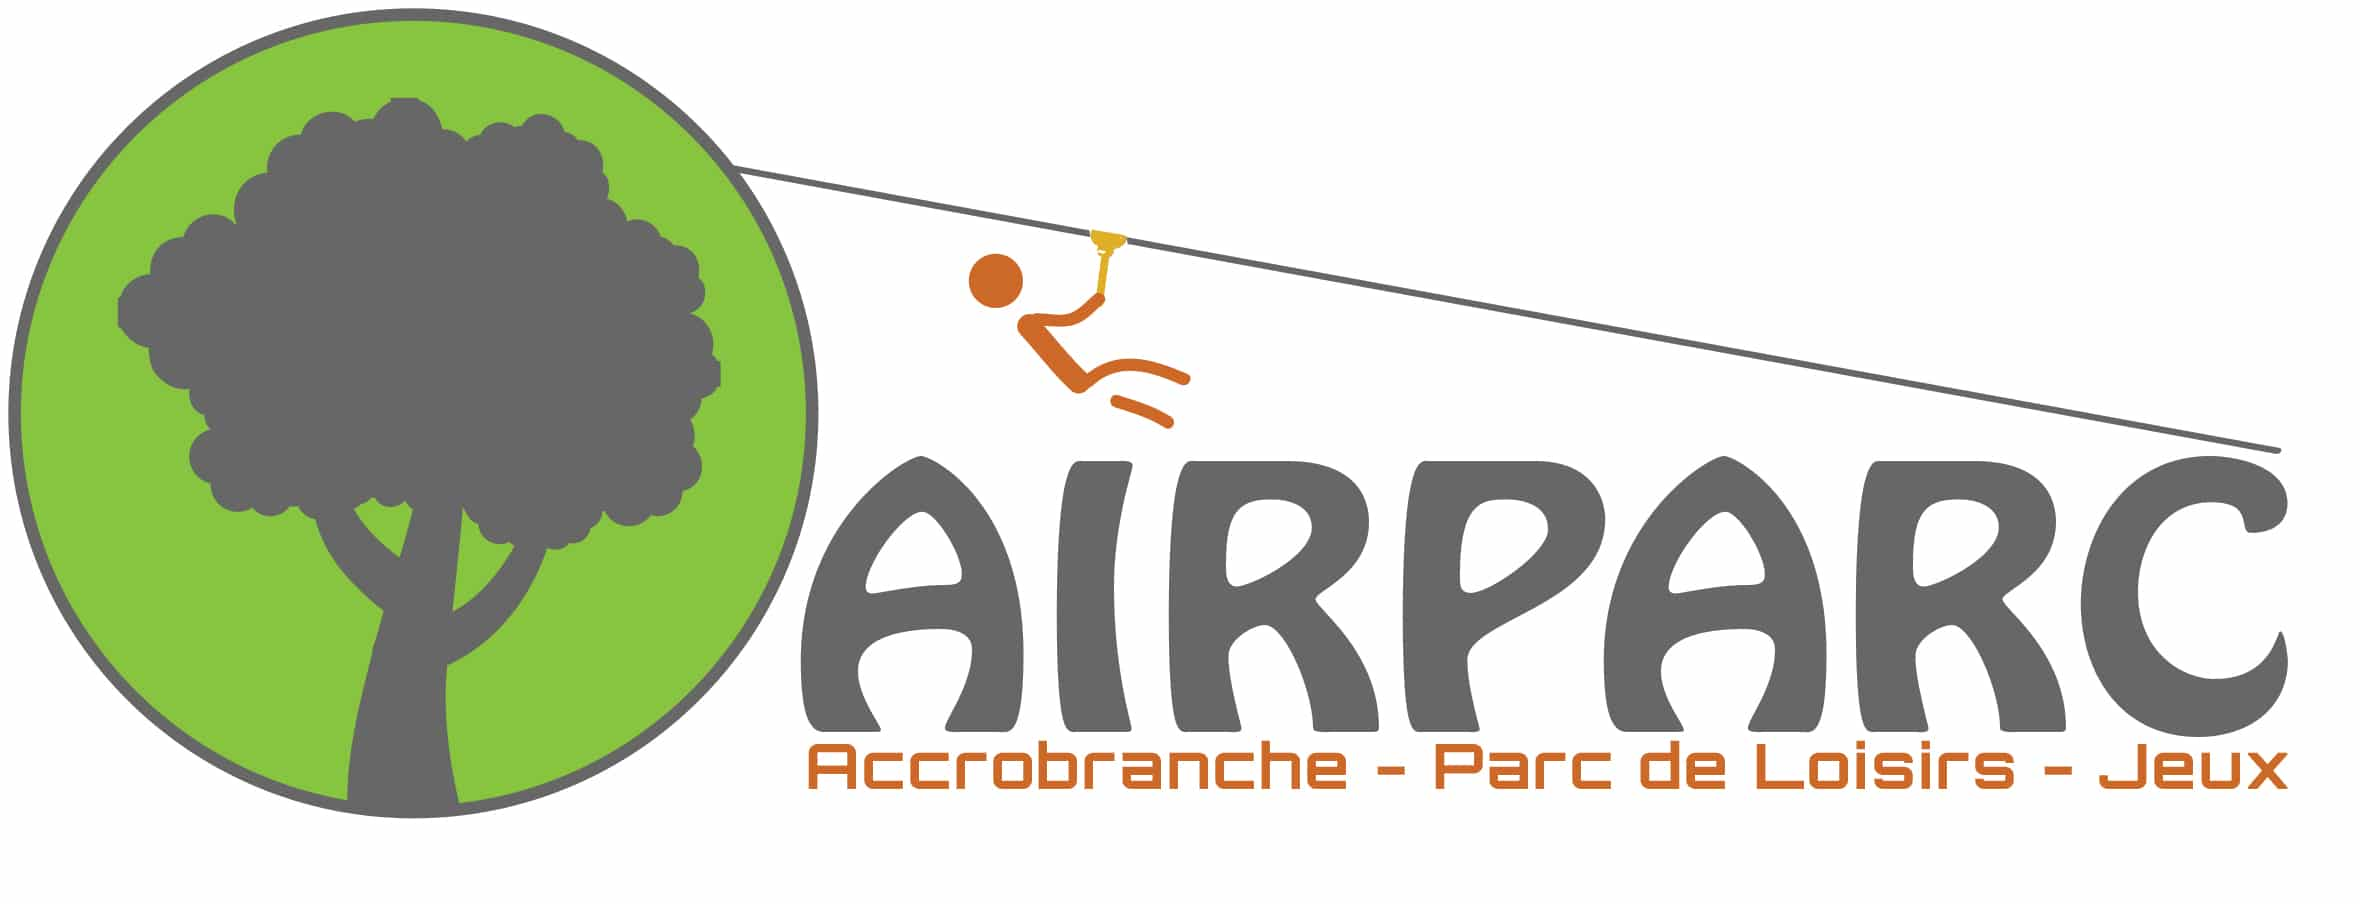 airparc -accrobranche